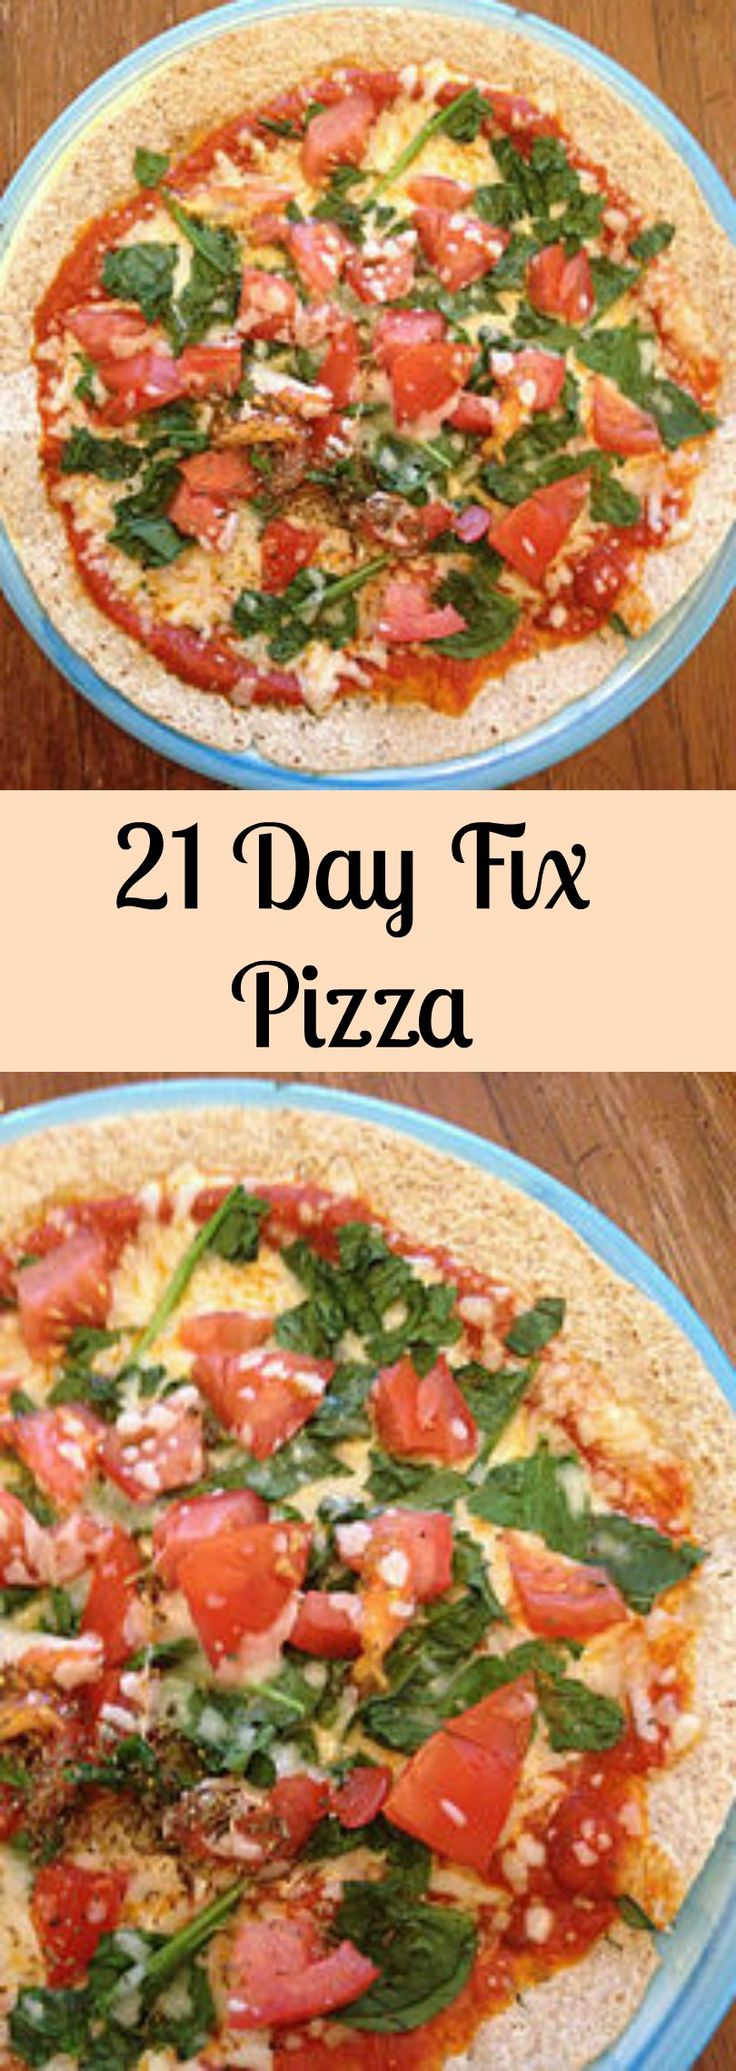 Quick & easy pizza recipe. 21 Day Fix approved!